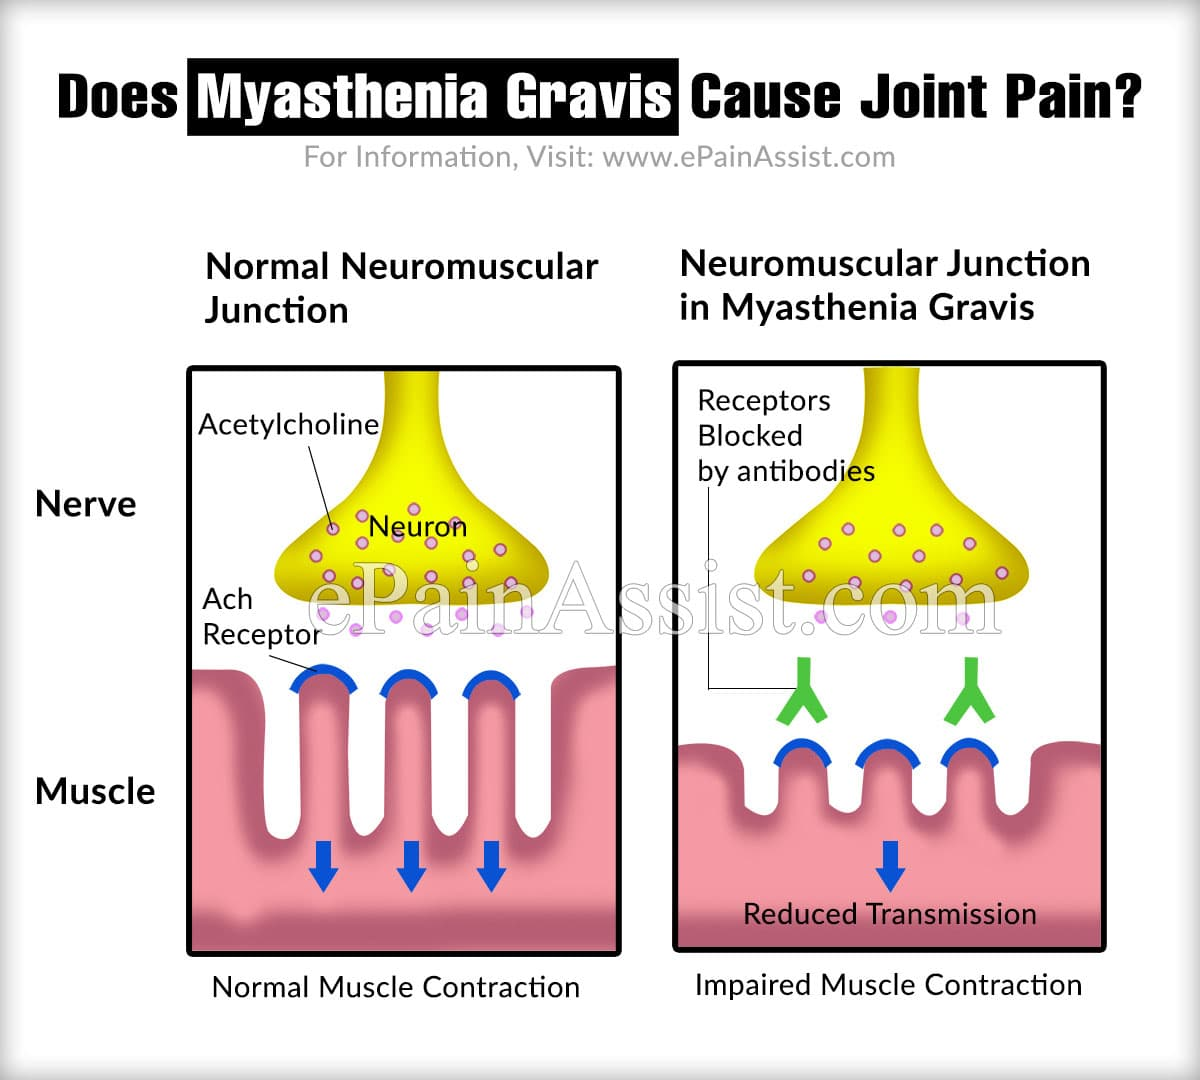 Does Myasthenia Gravis Cause Joint Pain?